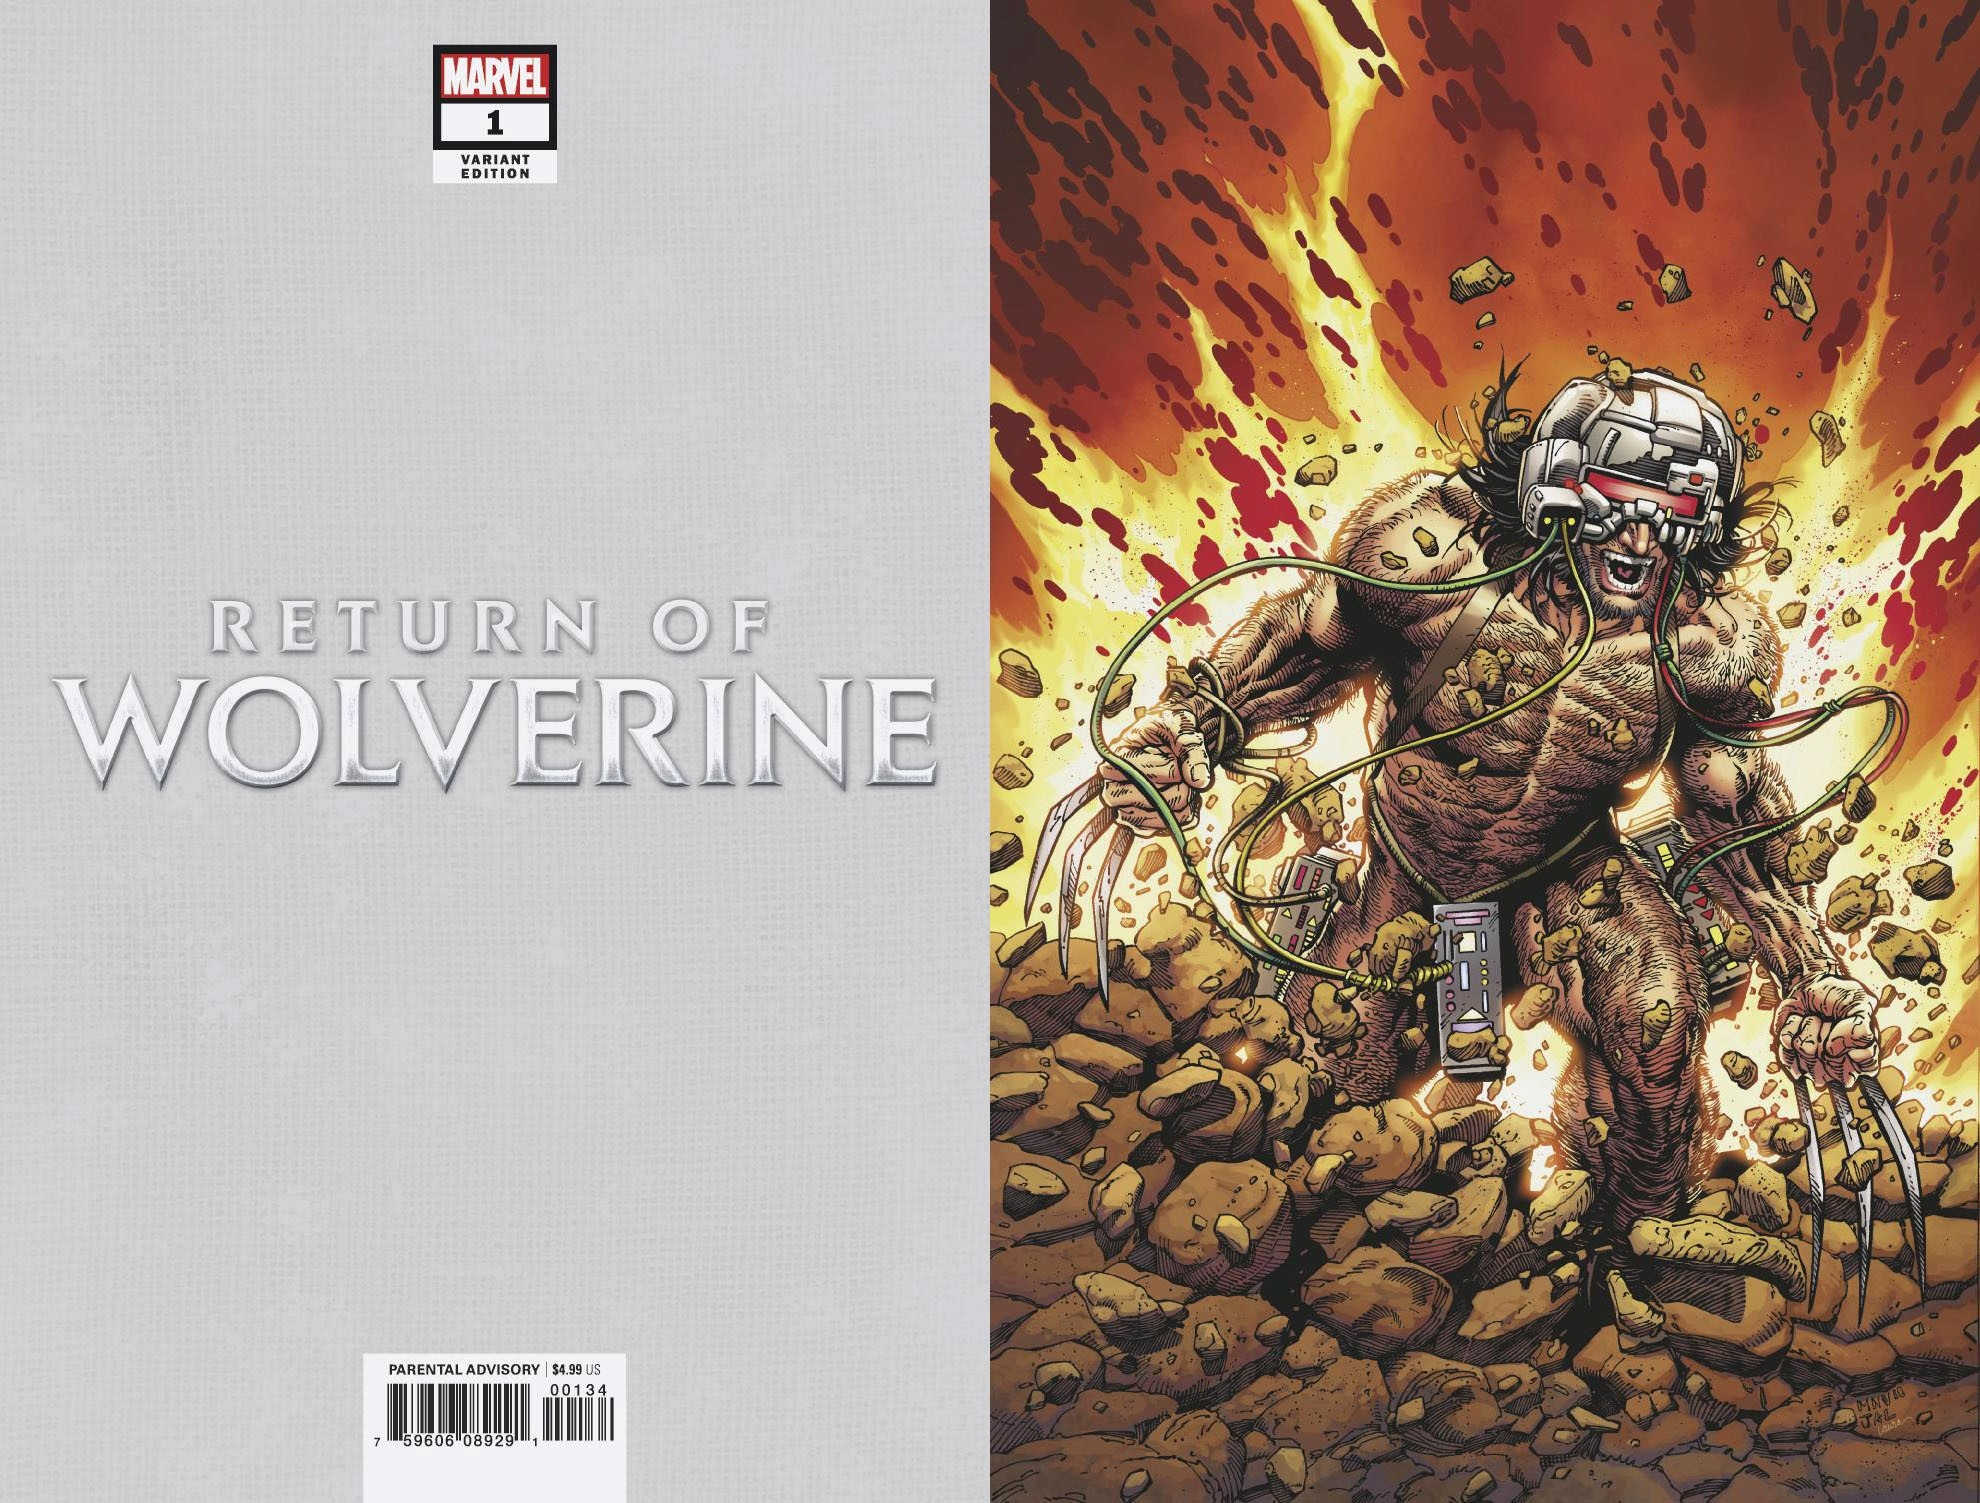 RETURN OF WOLVERINE #1 (OF 5) MCNIVEN WEAPON X COSTUME VIRGI